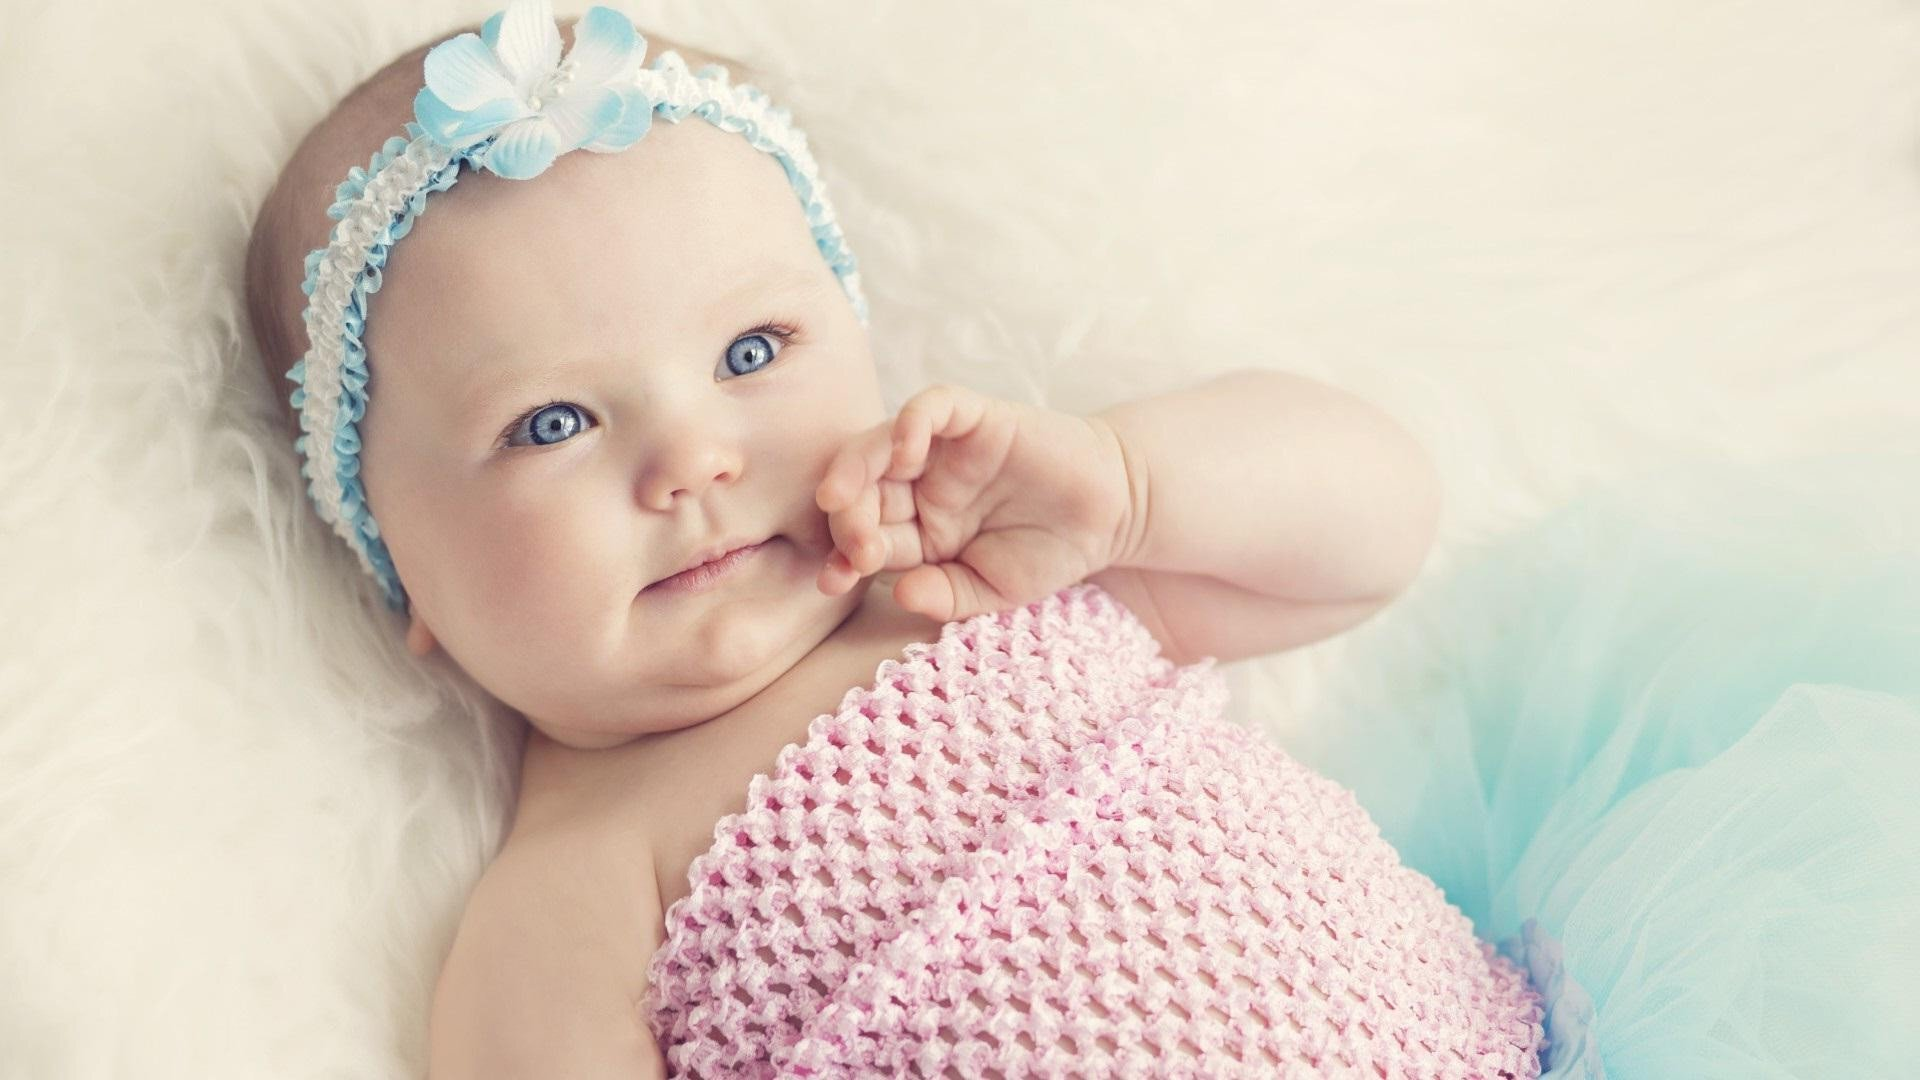 1920x1080 Cute Baby With Blue Eyes Laptop Full Hd 1080p Hd 4k Wallpapers Images Backgrounds Photos And Pictures